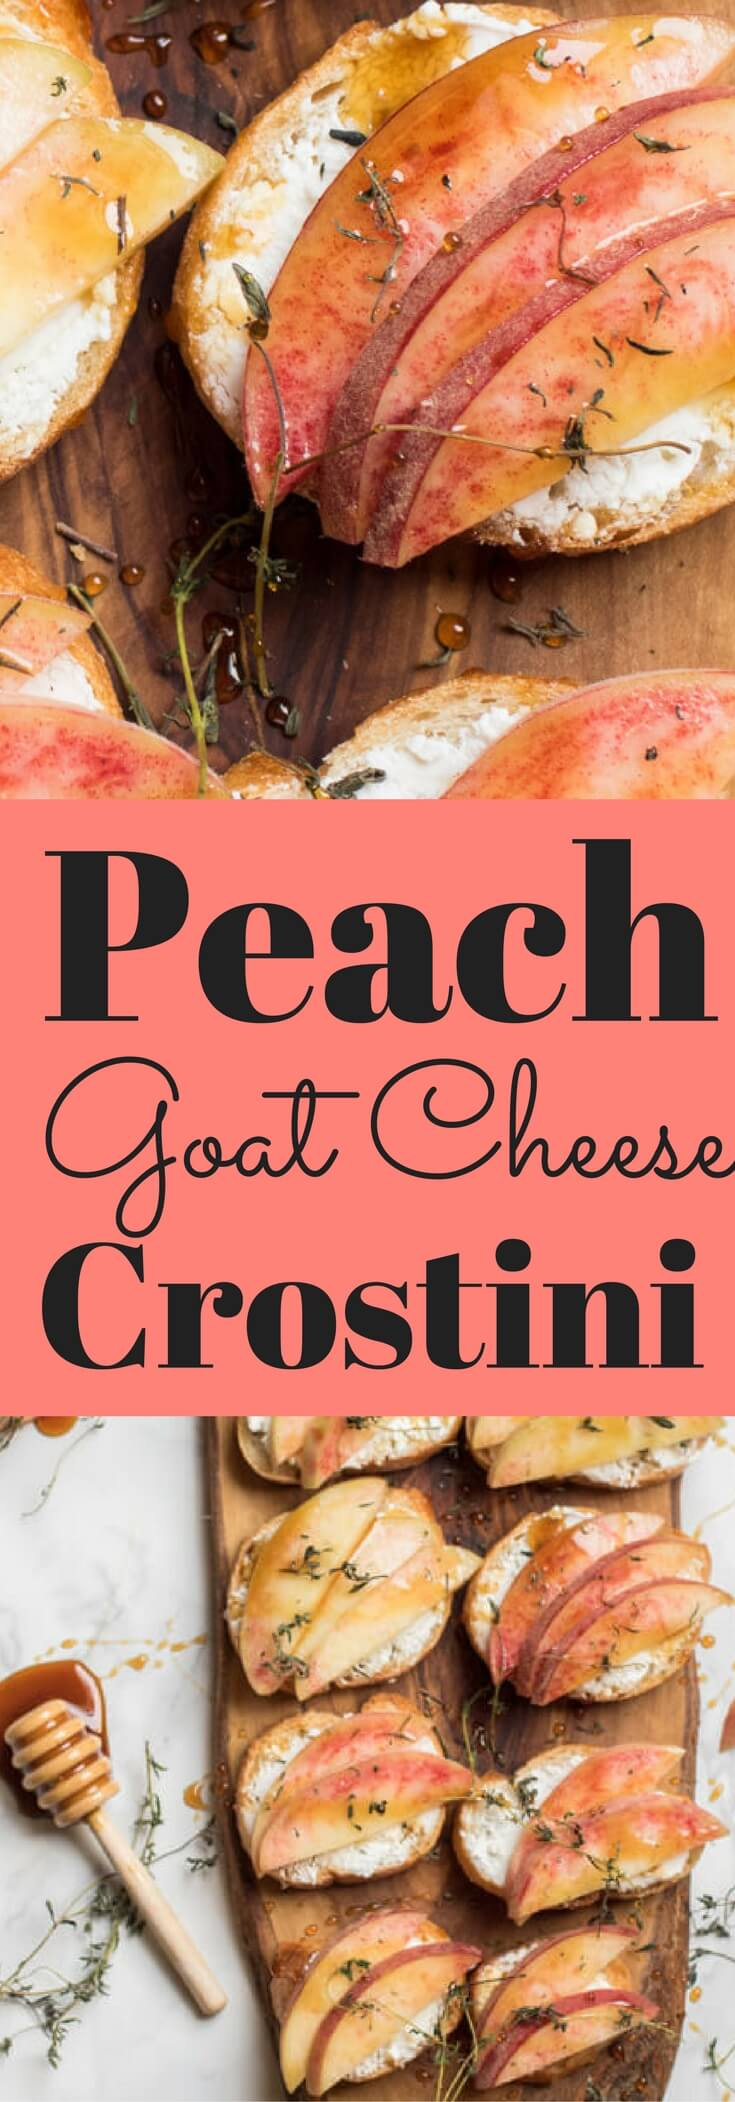 Peach goat cheese crostini is the perfect little bite on a hot summer's day. Creamy goat cheese topped with fresh juicy peaches, earthy thyme, and a drizzle of honey. Appetizer, peach, vegetarian, healthy | abraskitchen.com